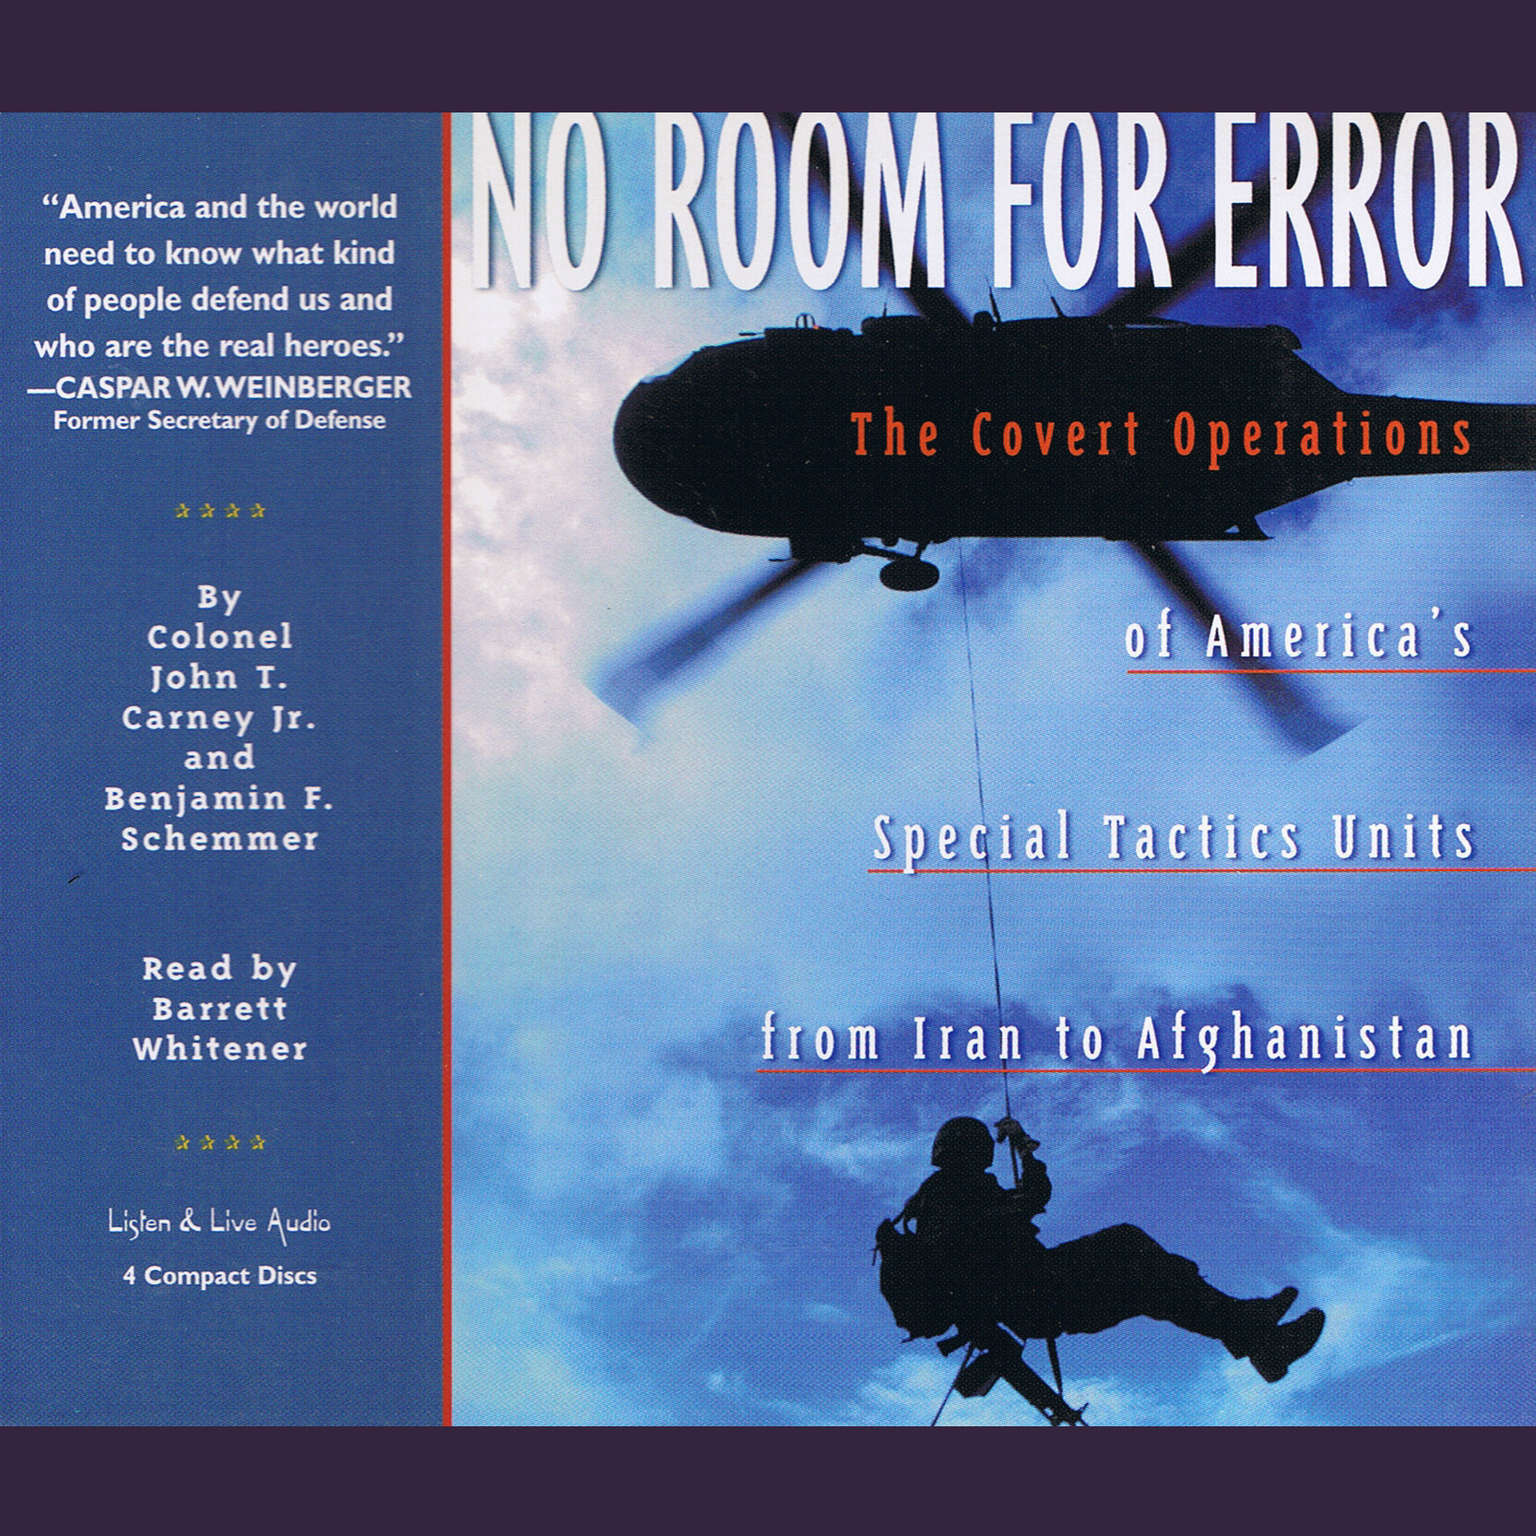 Printable No Room For Error: The Covert Operations of America's Special Tactics Units From Iran to Afghanistan Audiobook Cover Art